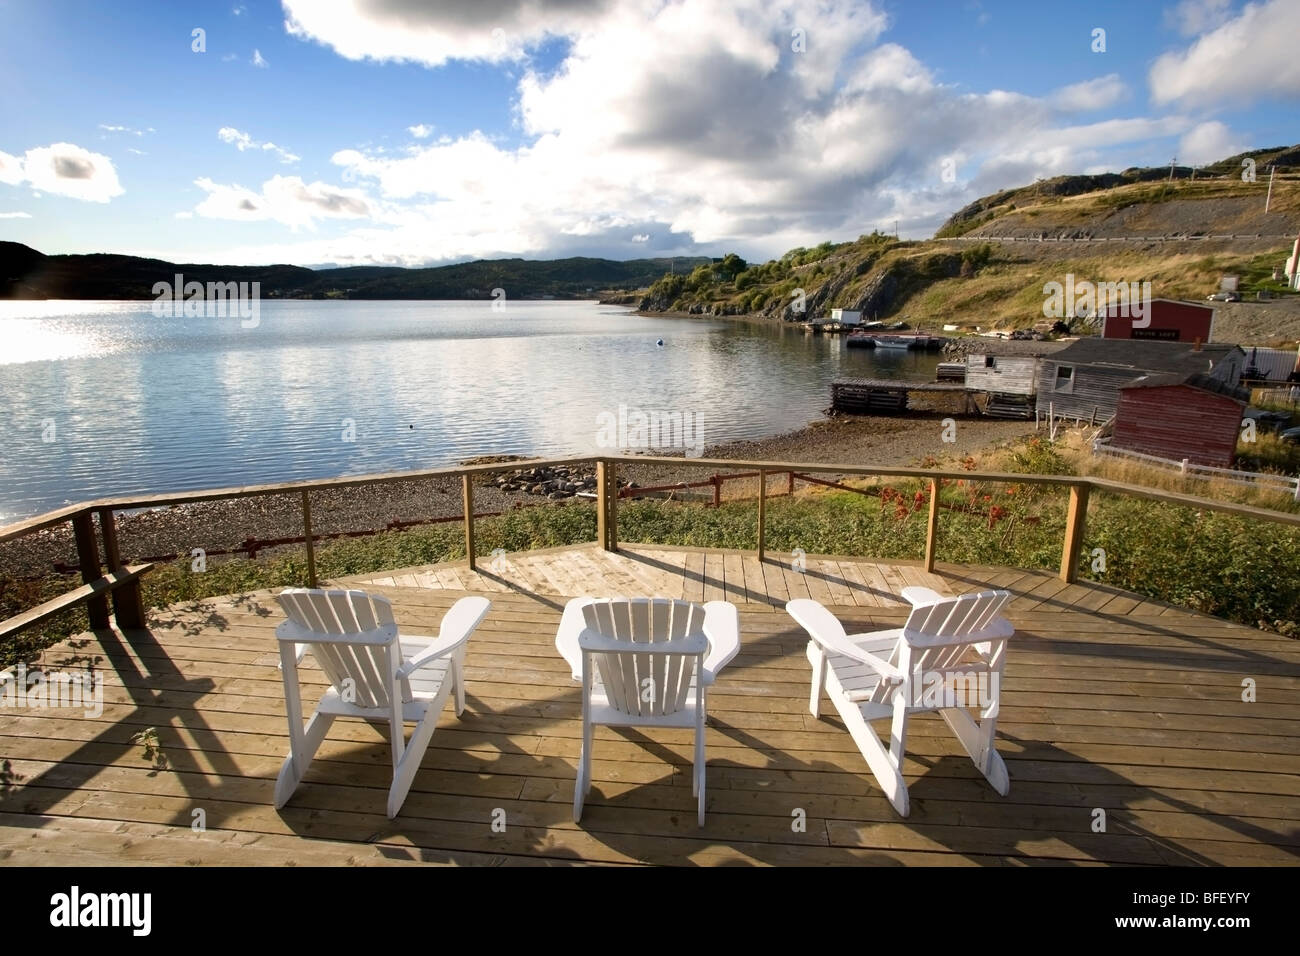 Lawn chairs, Gover House, Artisan Inn, Trinity, Newfoundland, Canada - Stock Image